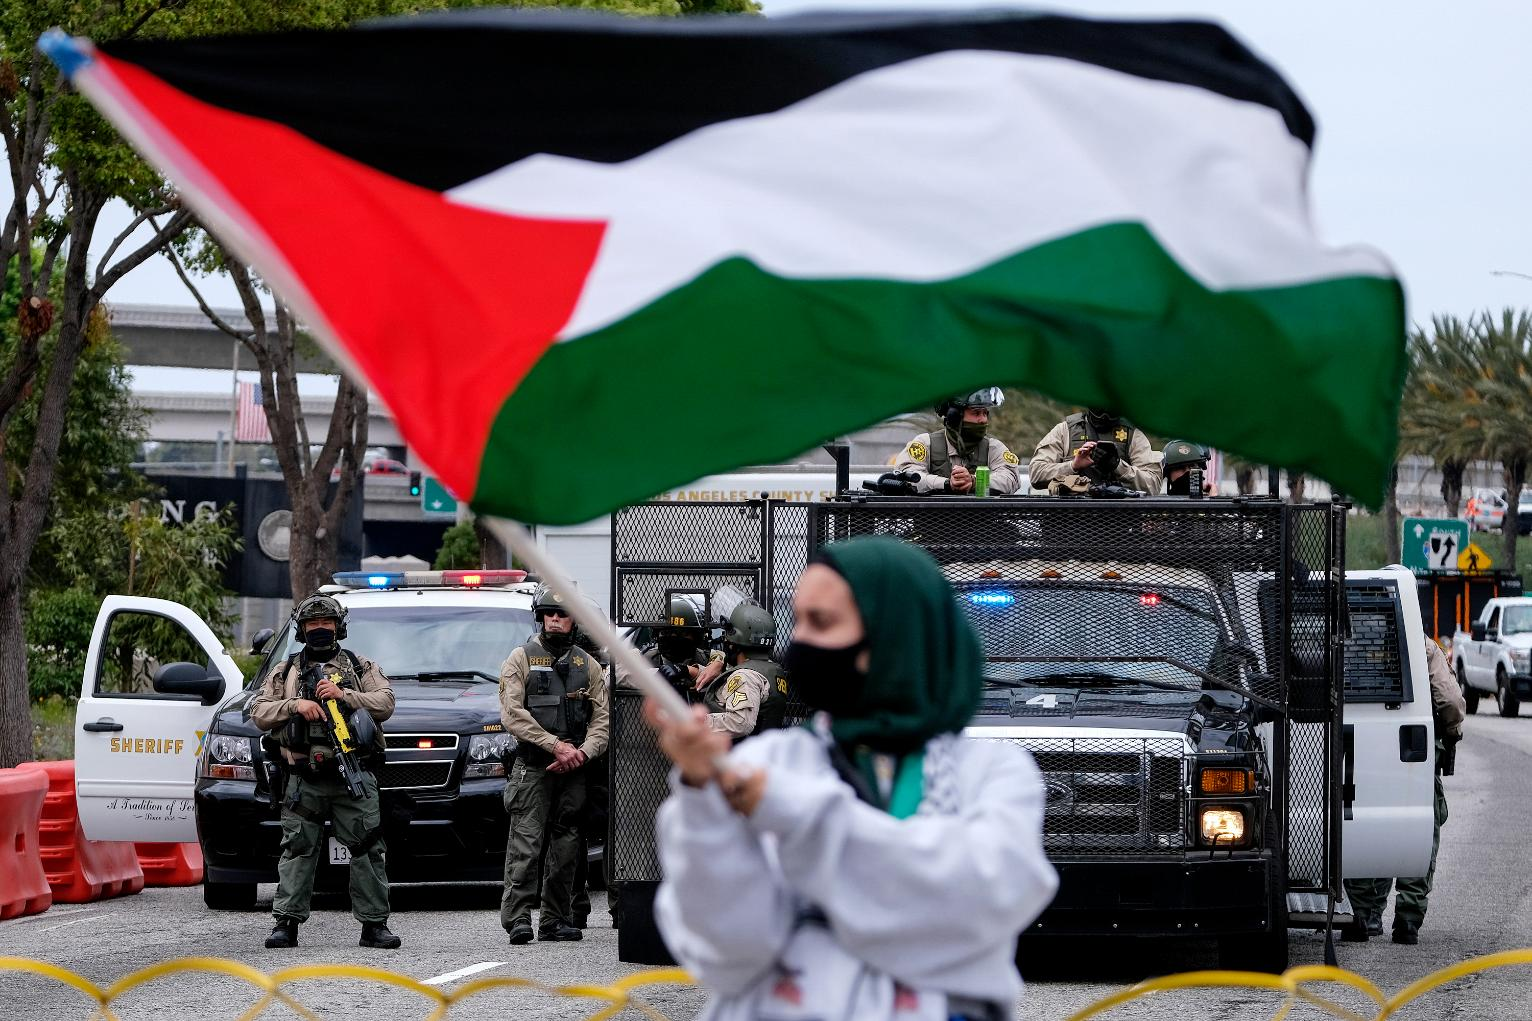 Protesters in Major US Cities Decry Airstrikes Over Gaza | California News | US News